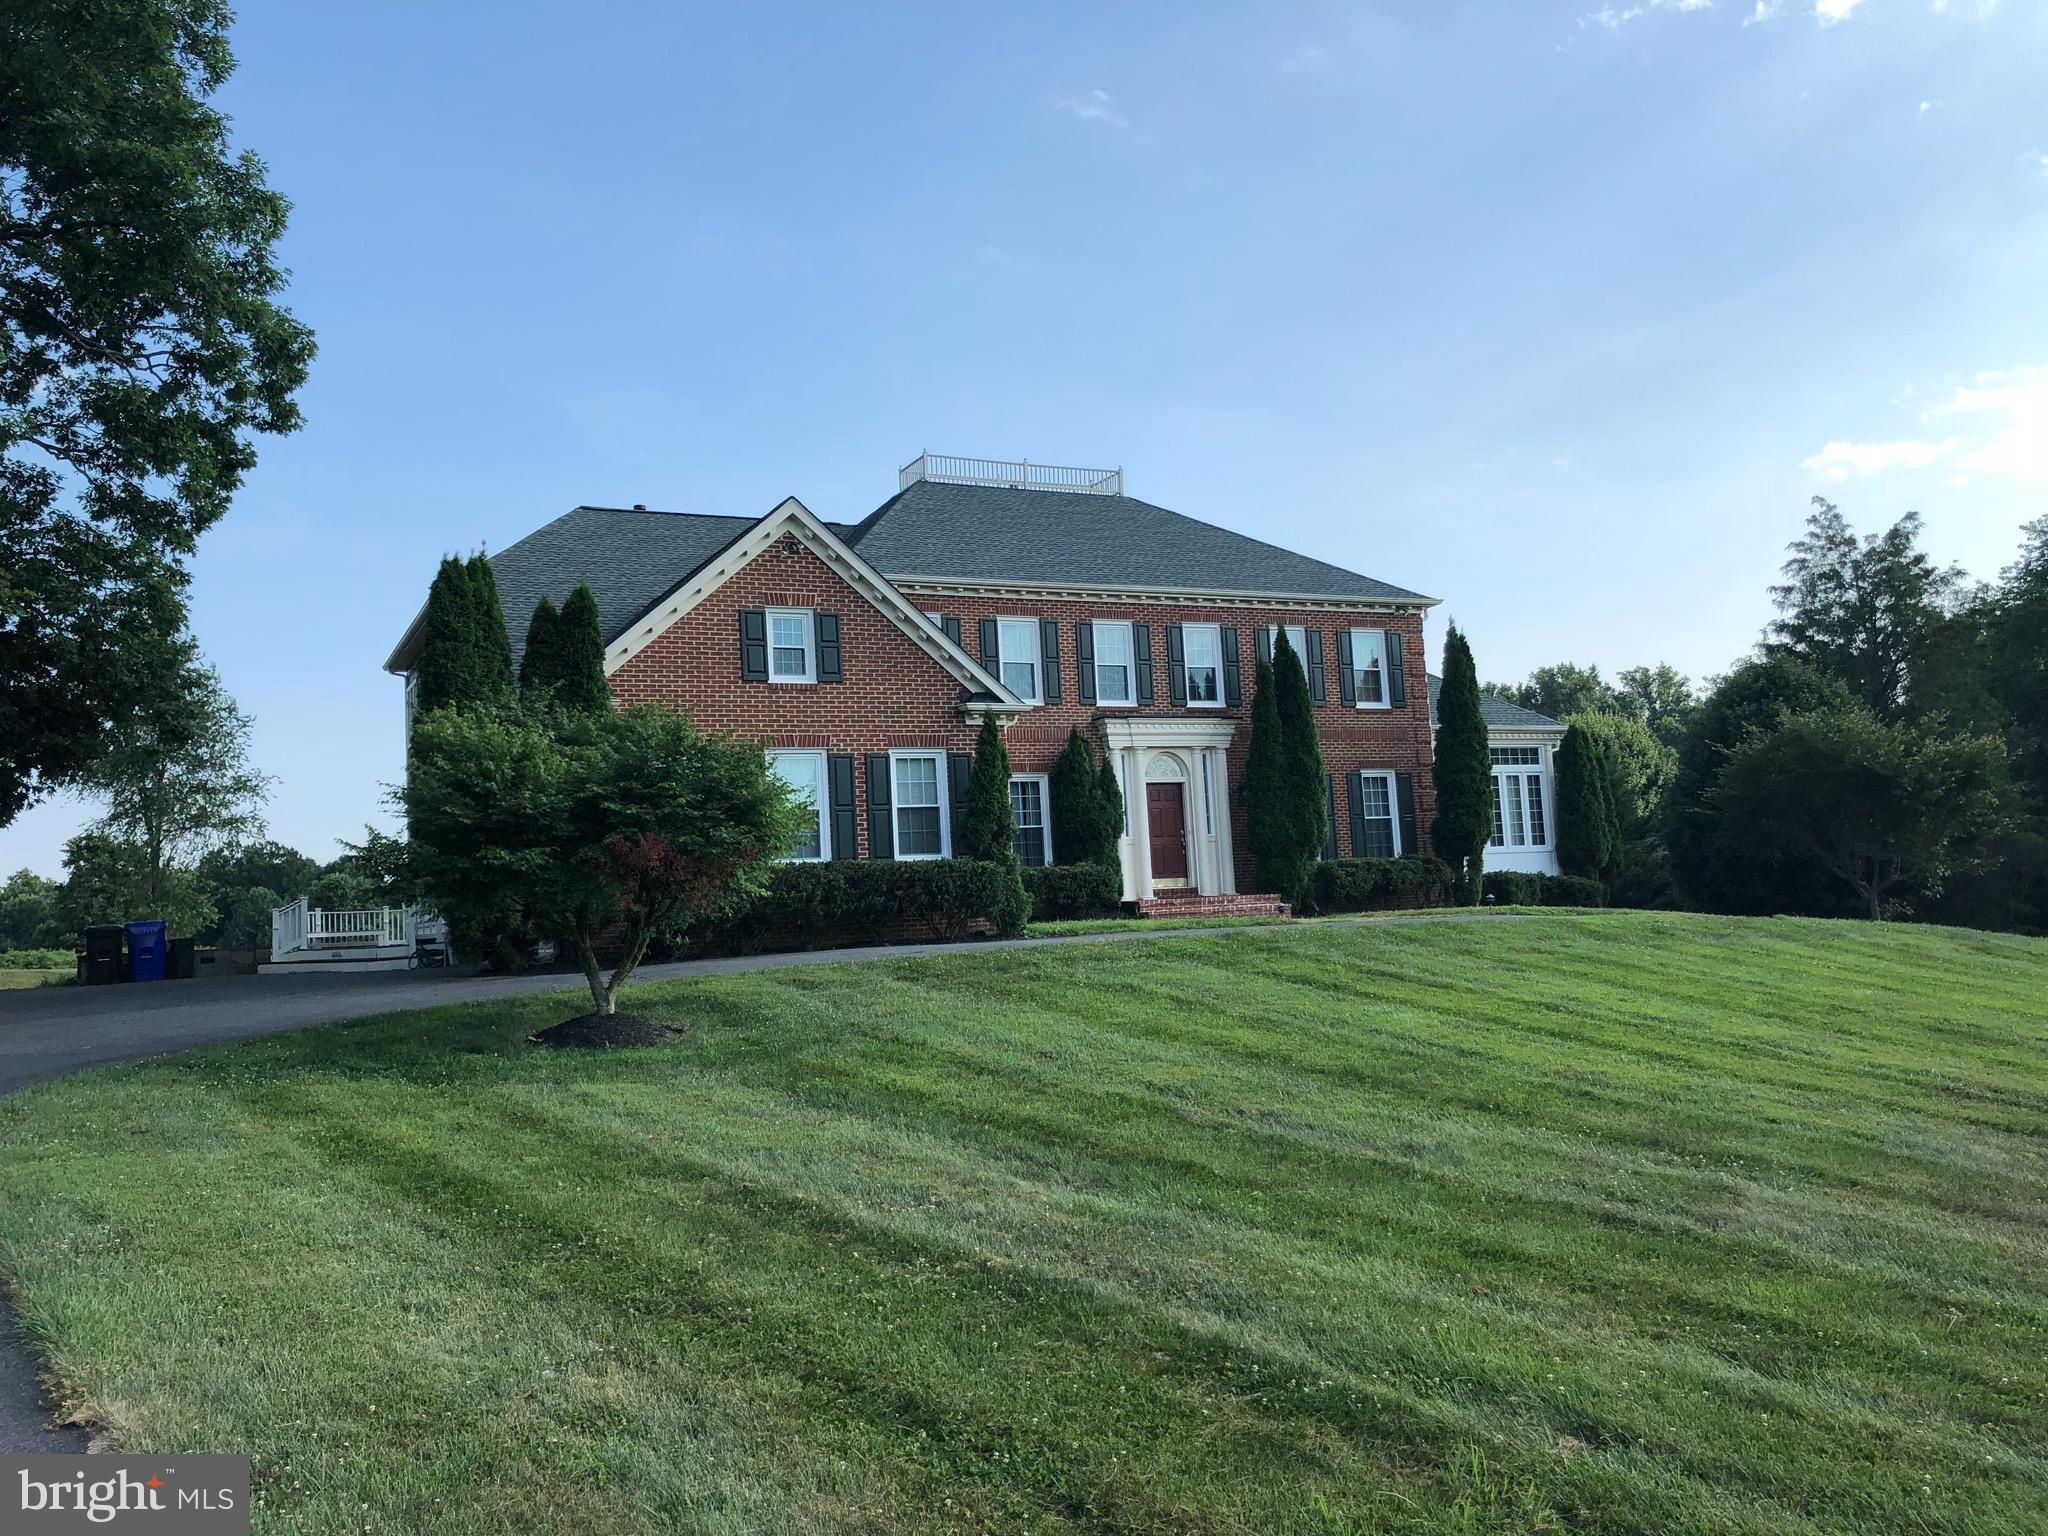 22301 ESSEX VIEW DRIVE, GAITHERSBURG, MD 20882